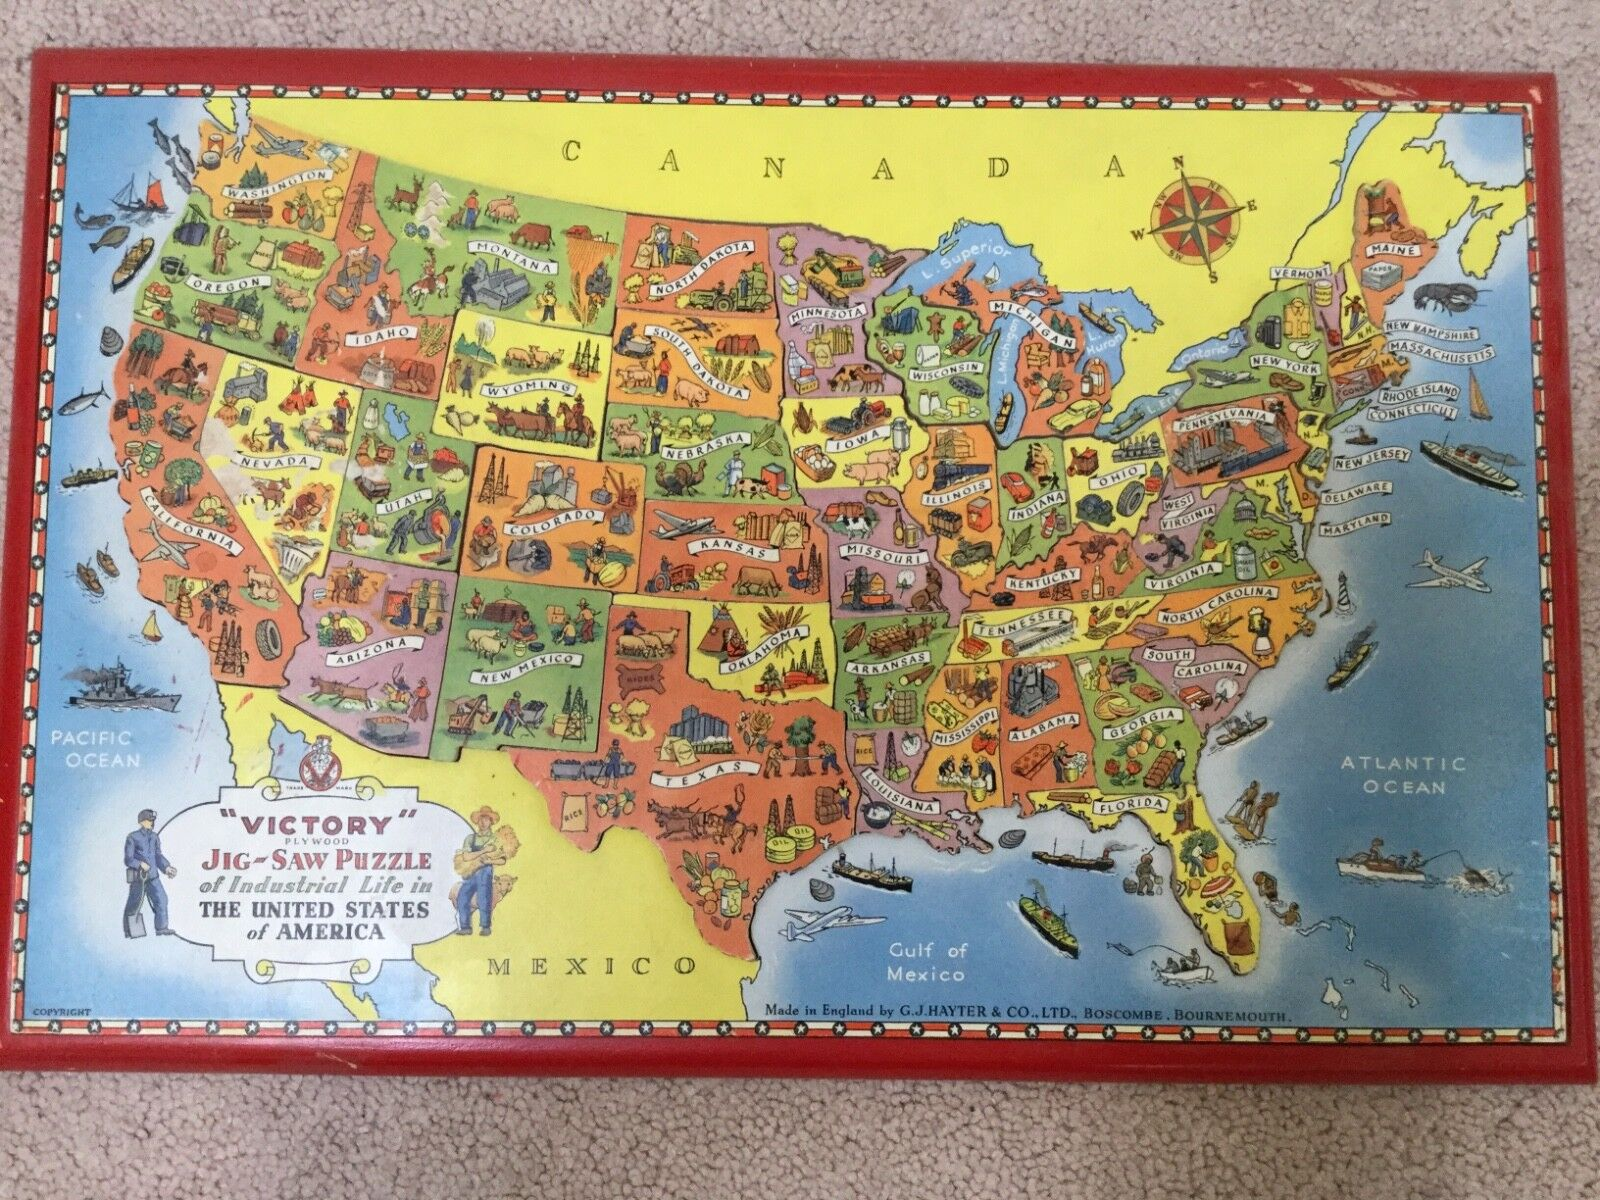 VINTAGE Victory Plywood Jig Saw Puzzle Industrial Life in United States Map-1959